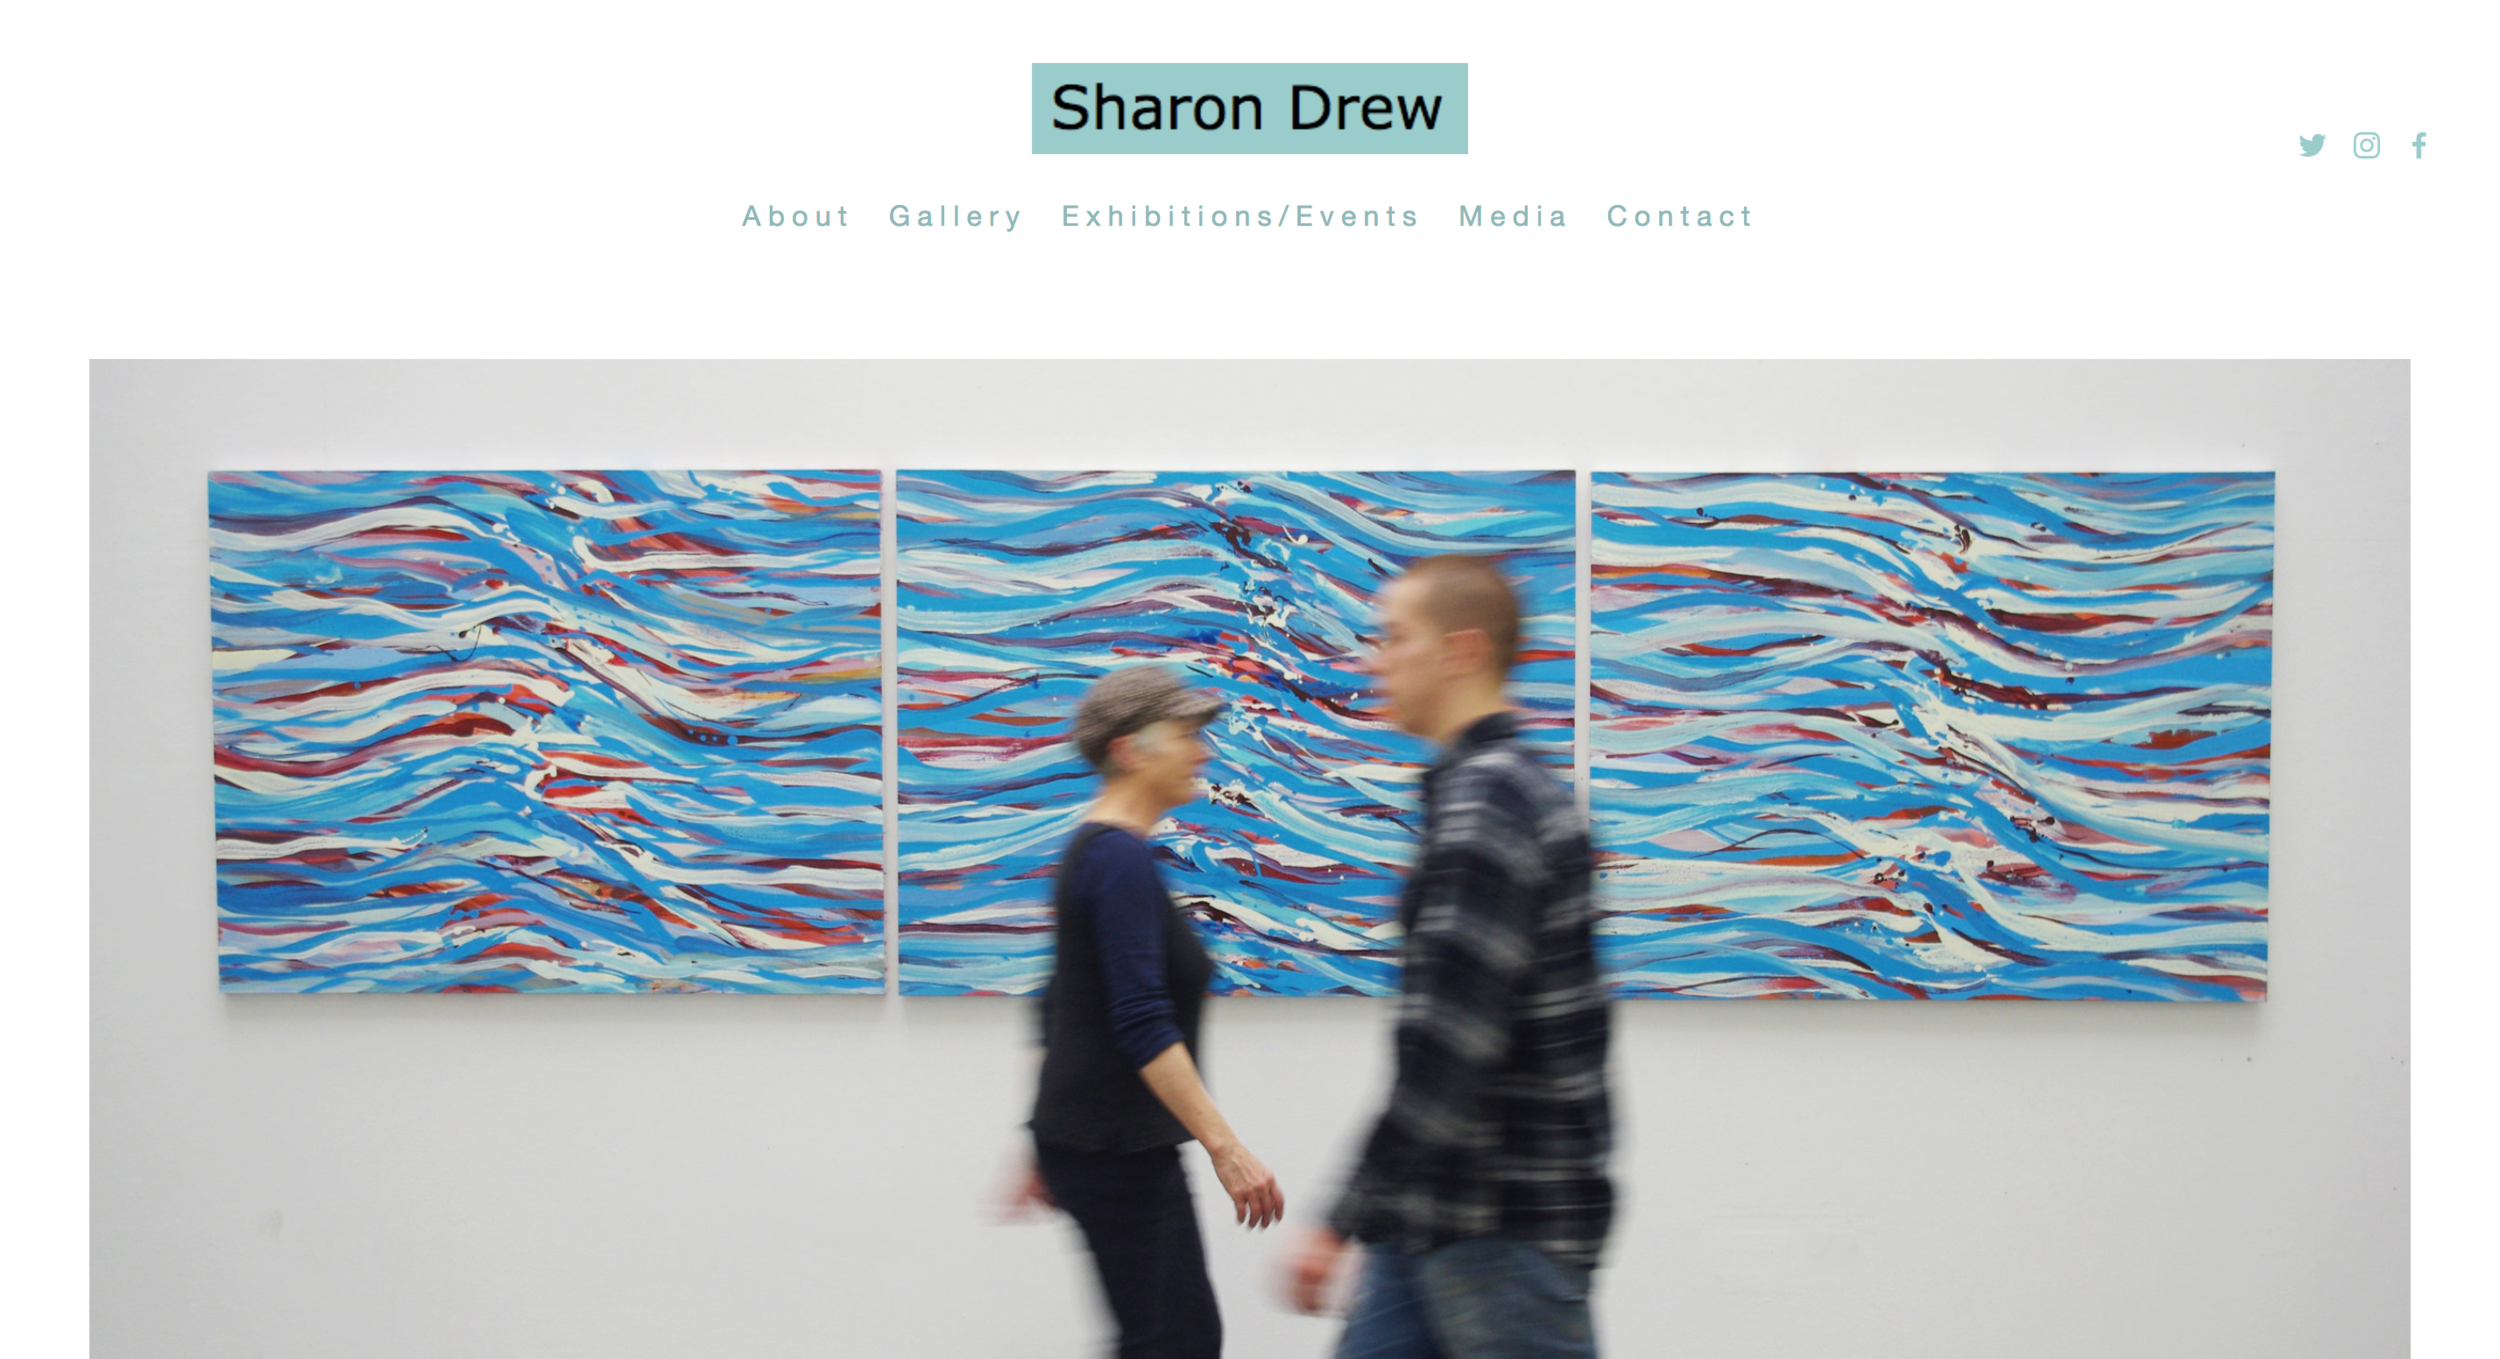 Artists - Sharon Drew is an abstract painter who, from her studio in Walthamstow, creates vibrant strong work - something we believe is complemented by the sharp clarity of this website.She is incredibly successful at showing her work, this site allows her to easily update her sold work and promote her next exhibition.